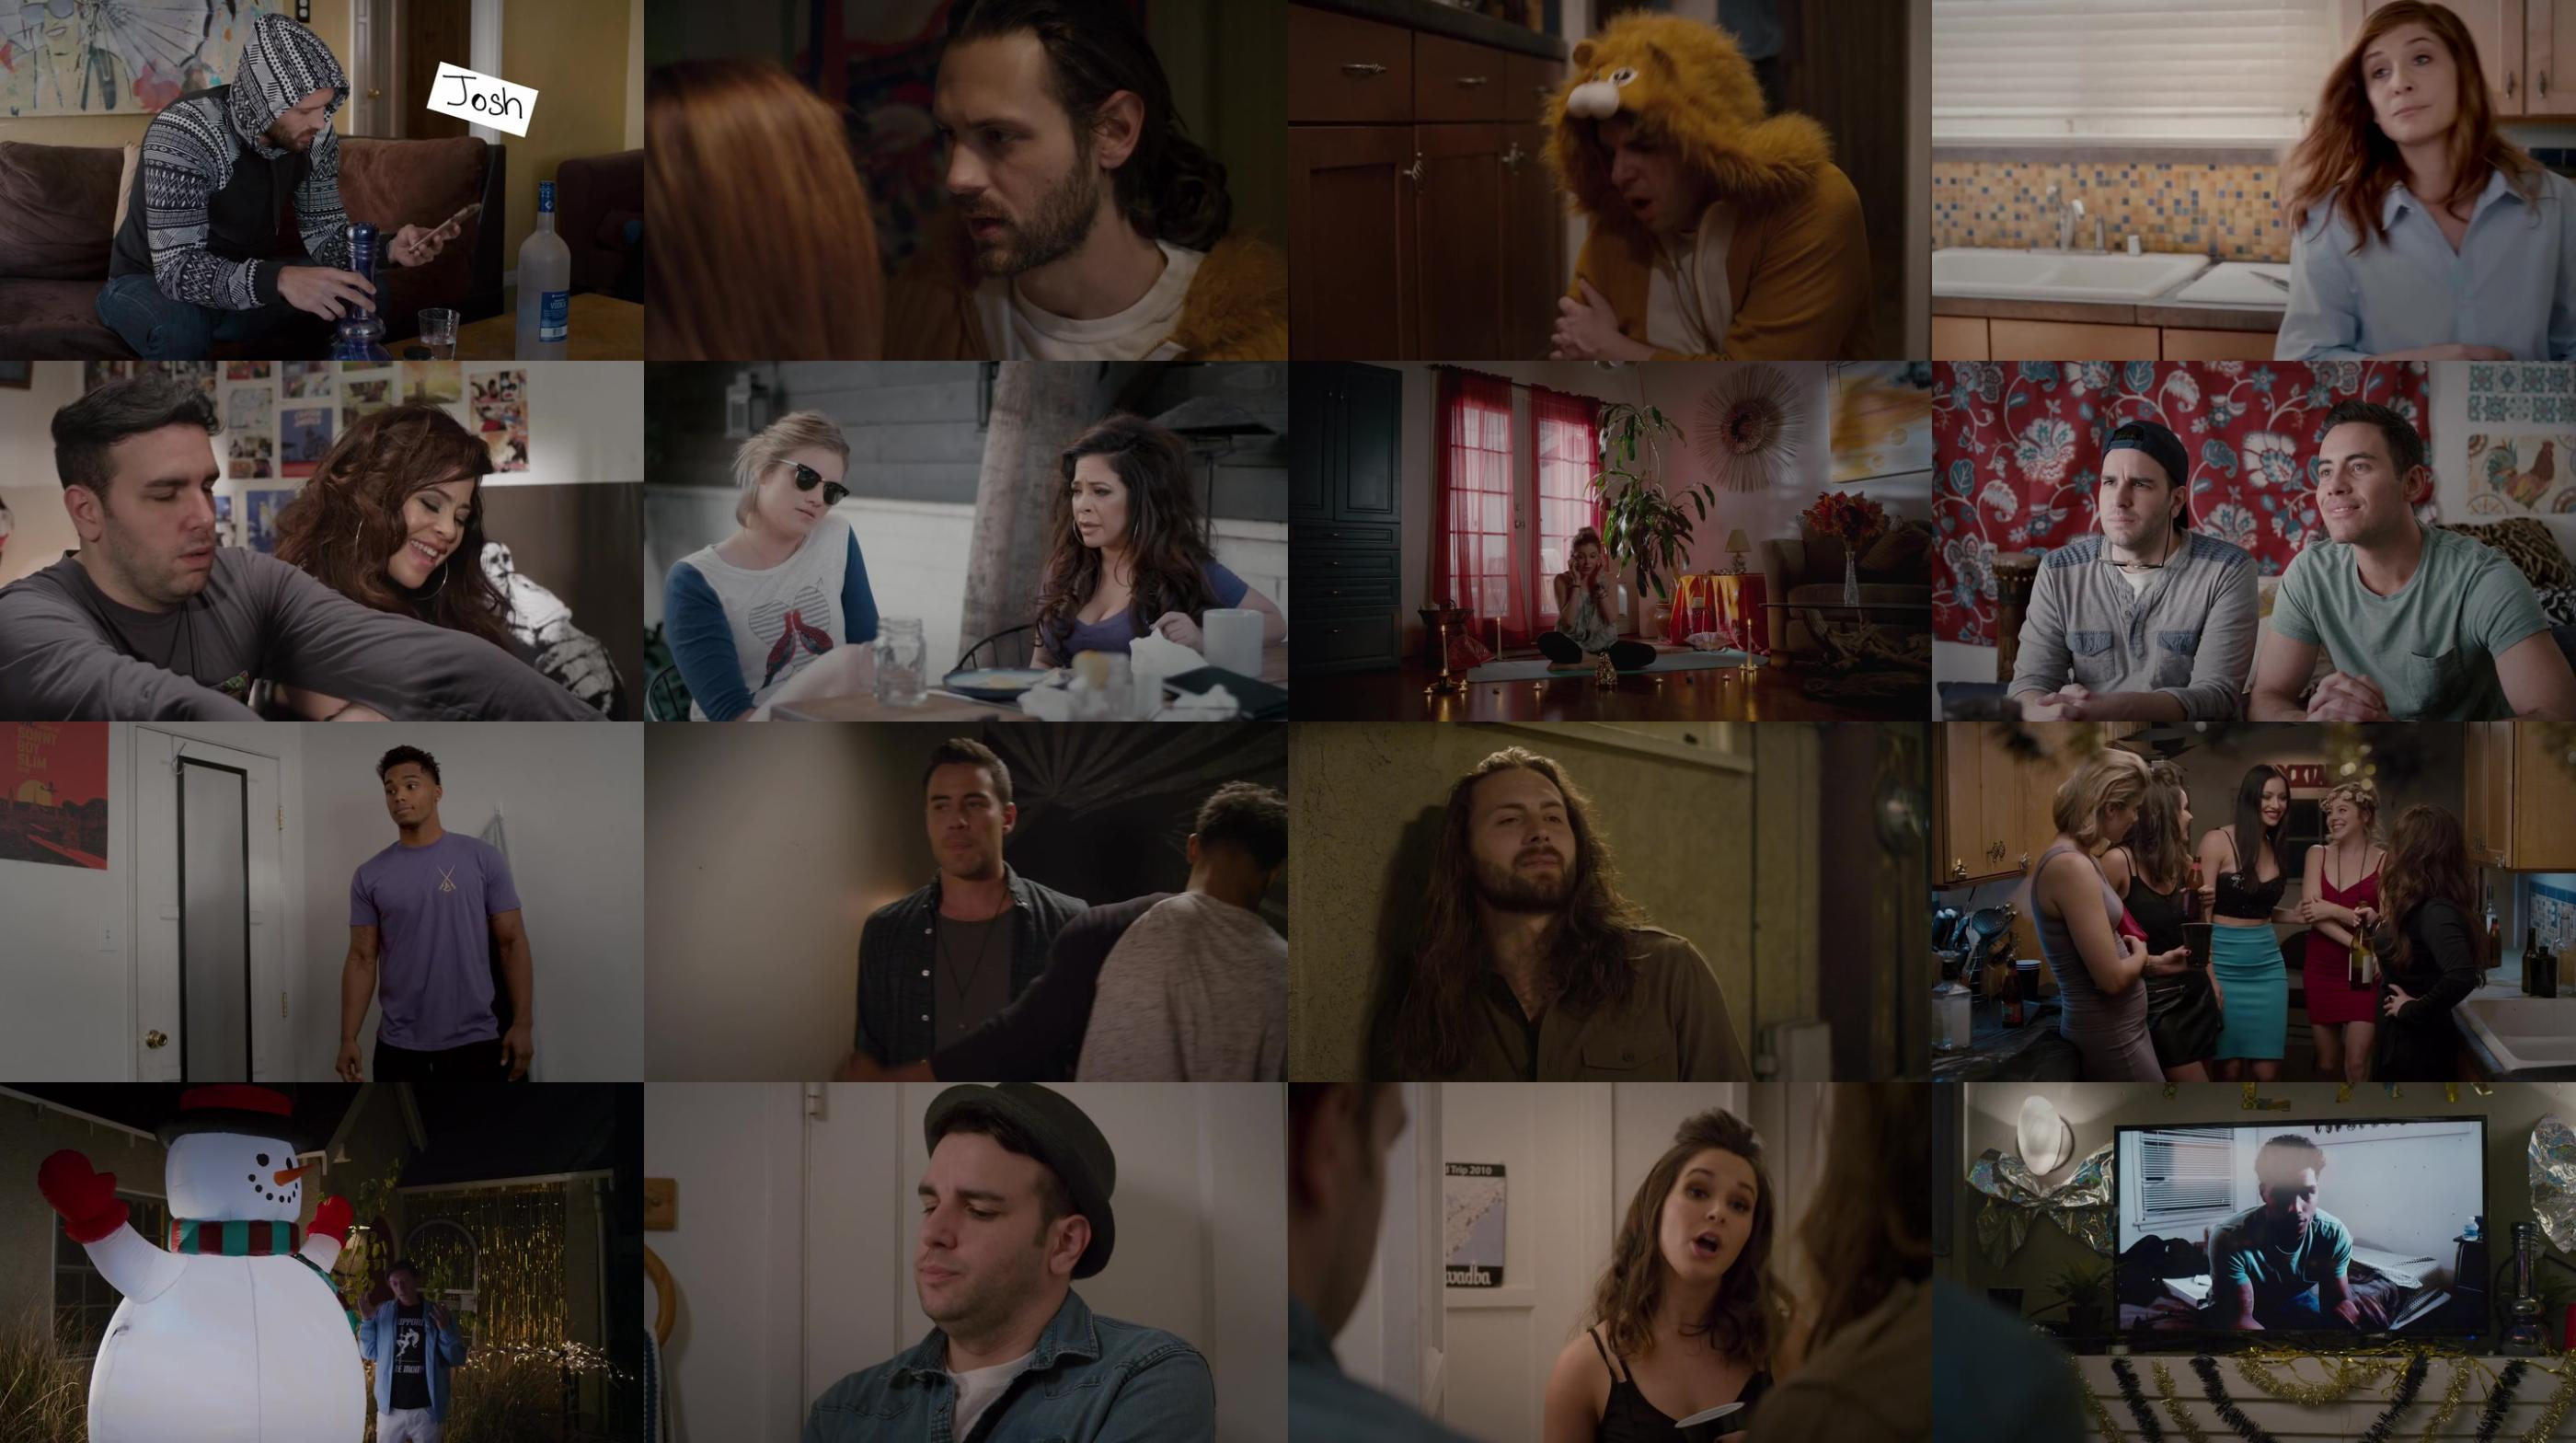 1 2 New Year 2019 HDRip XviD AC3-EVO